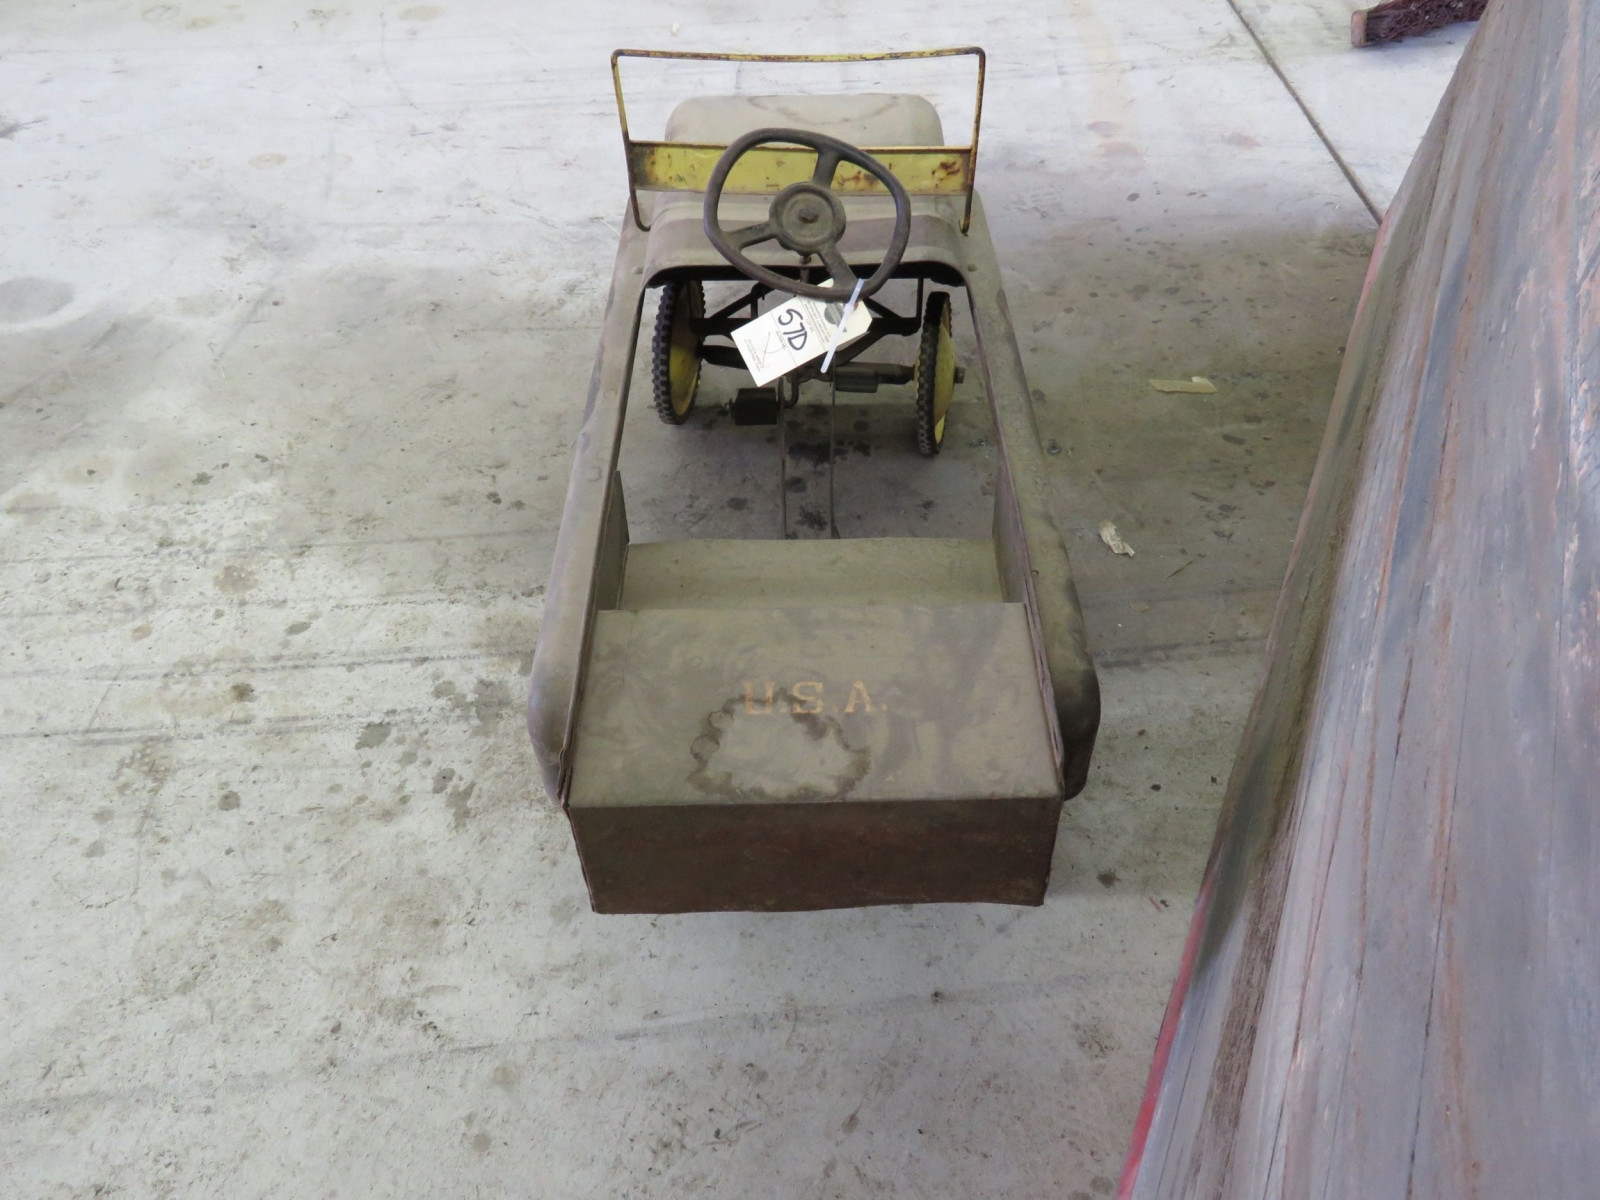 Vintage Garton Military Jeep Pedal Car for restore - Image 4